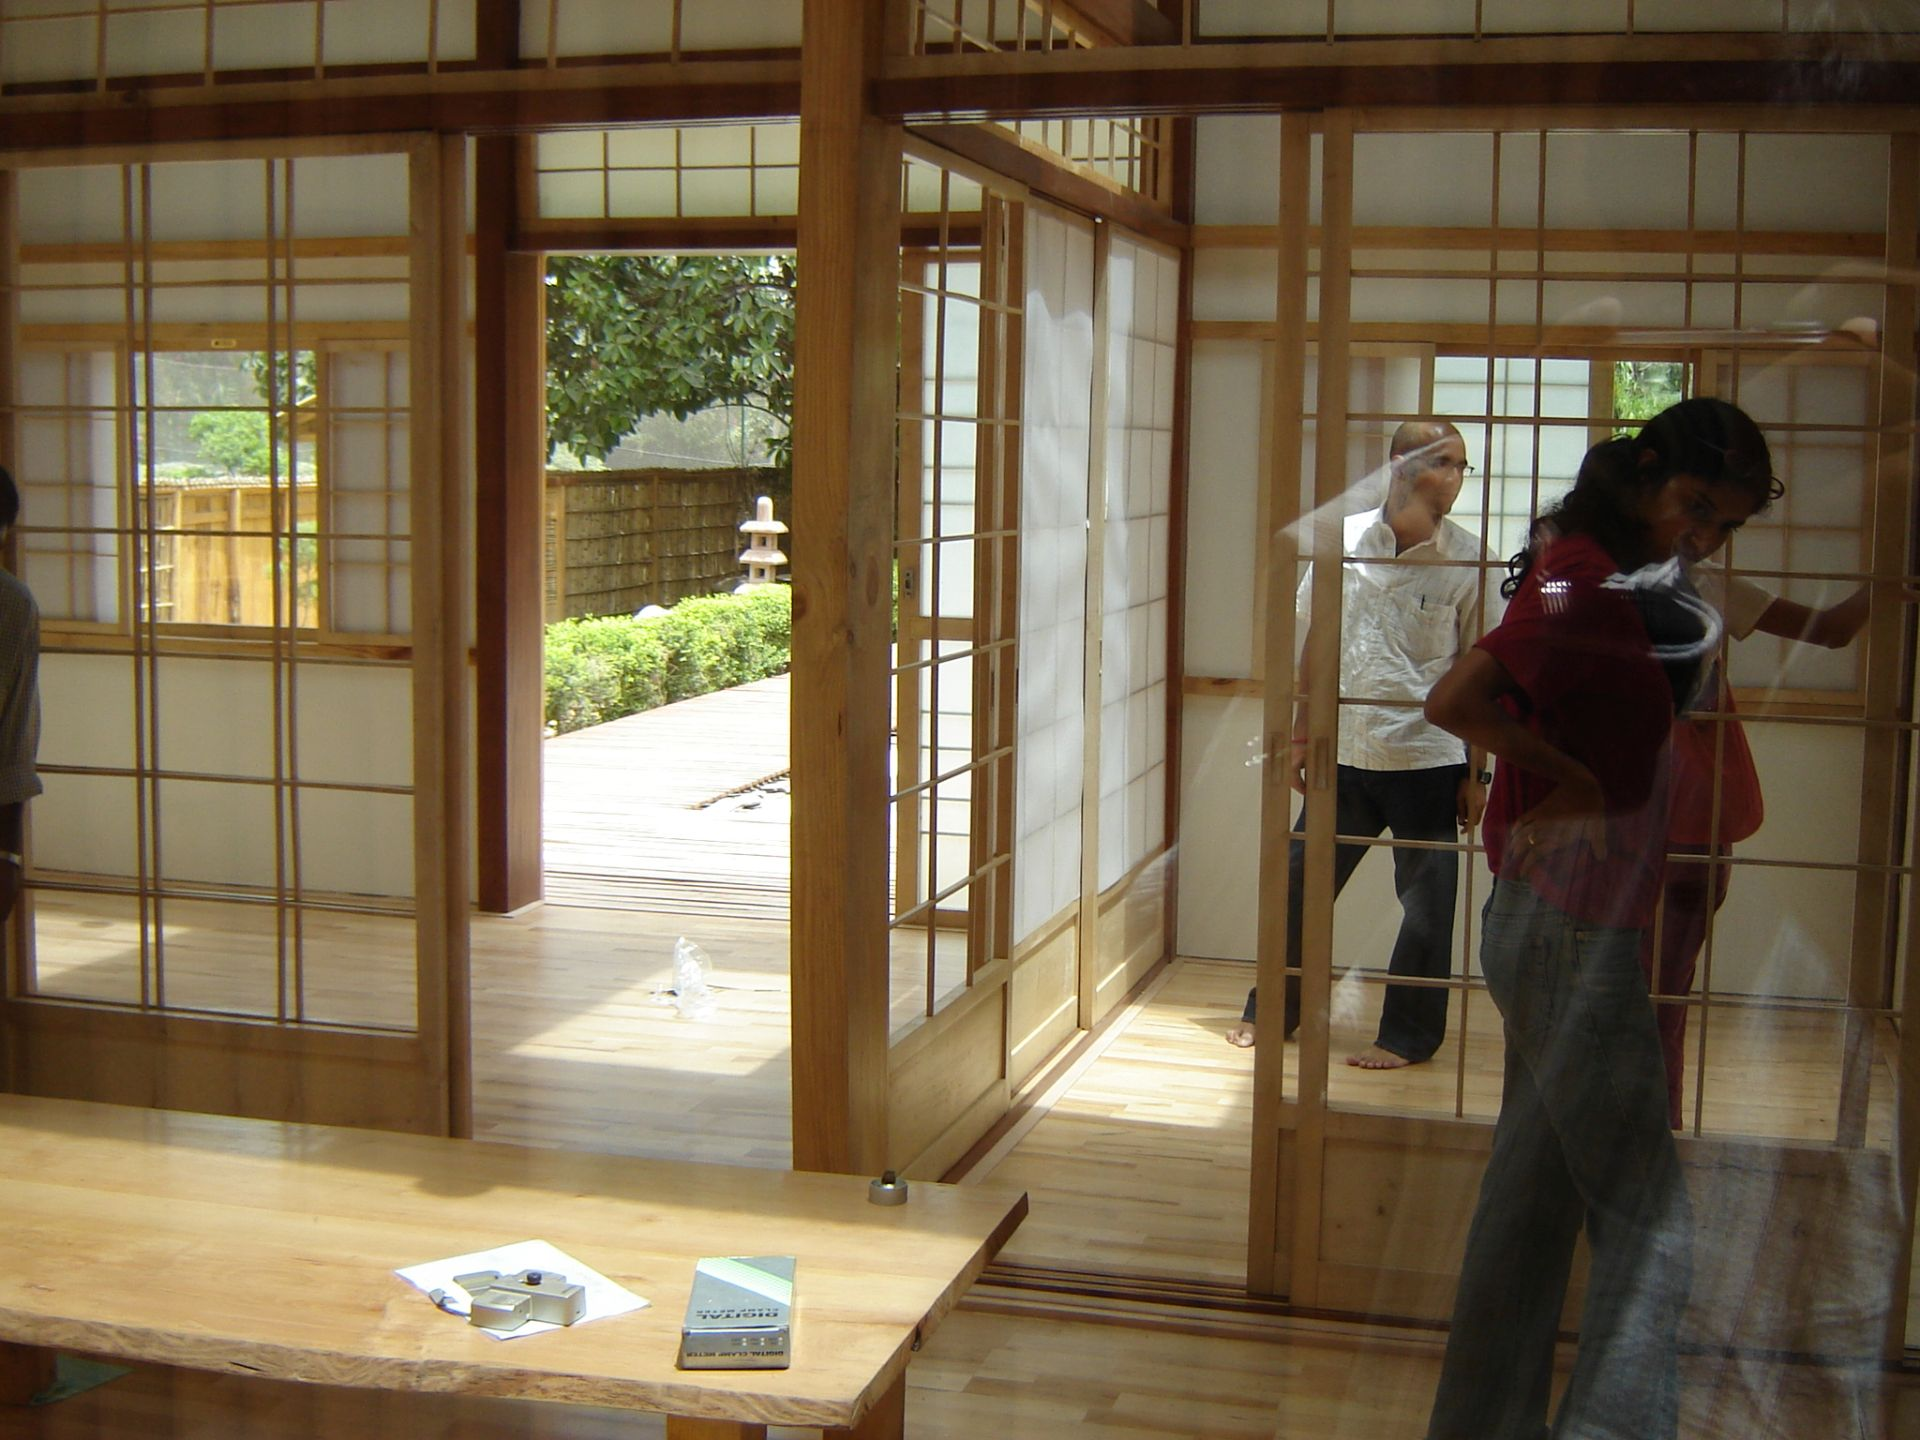 Indo-Japanese Tea House and Cultural Centre - SpaceMatters with Sanjeet Wahi'